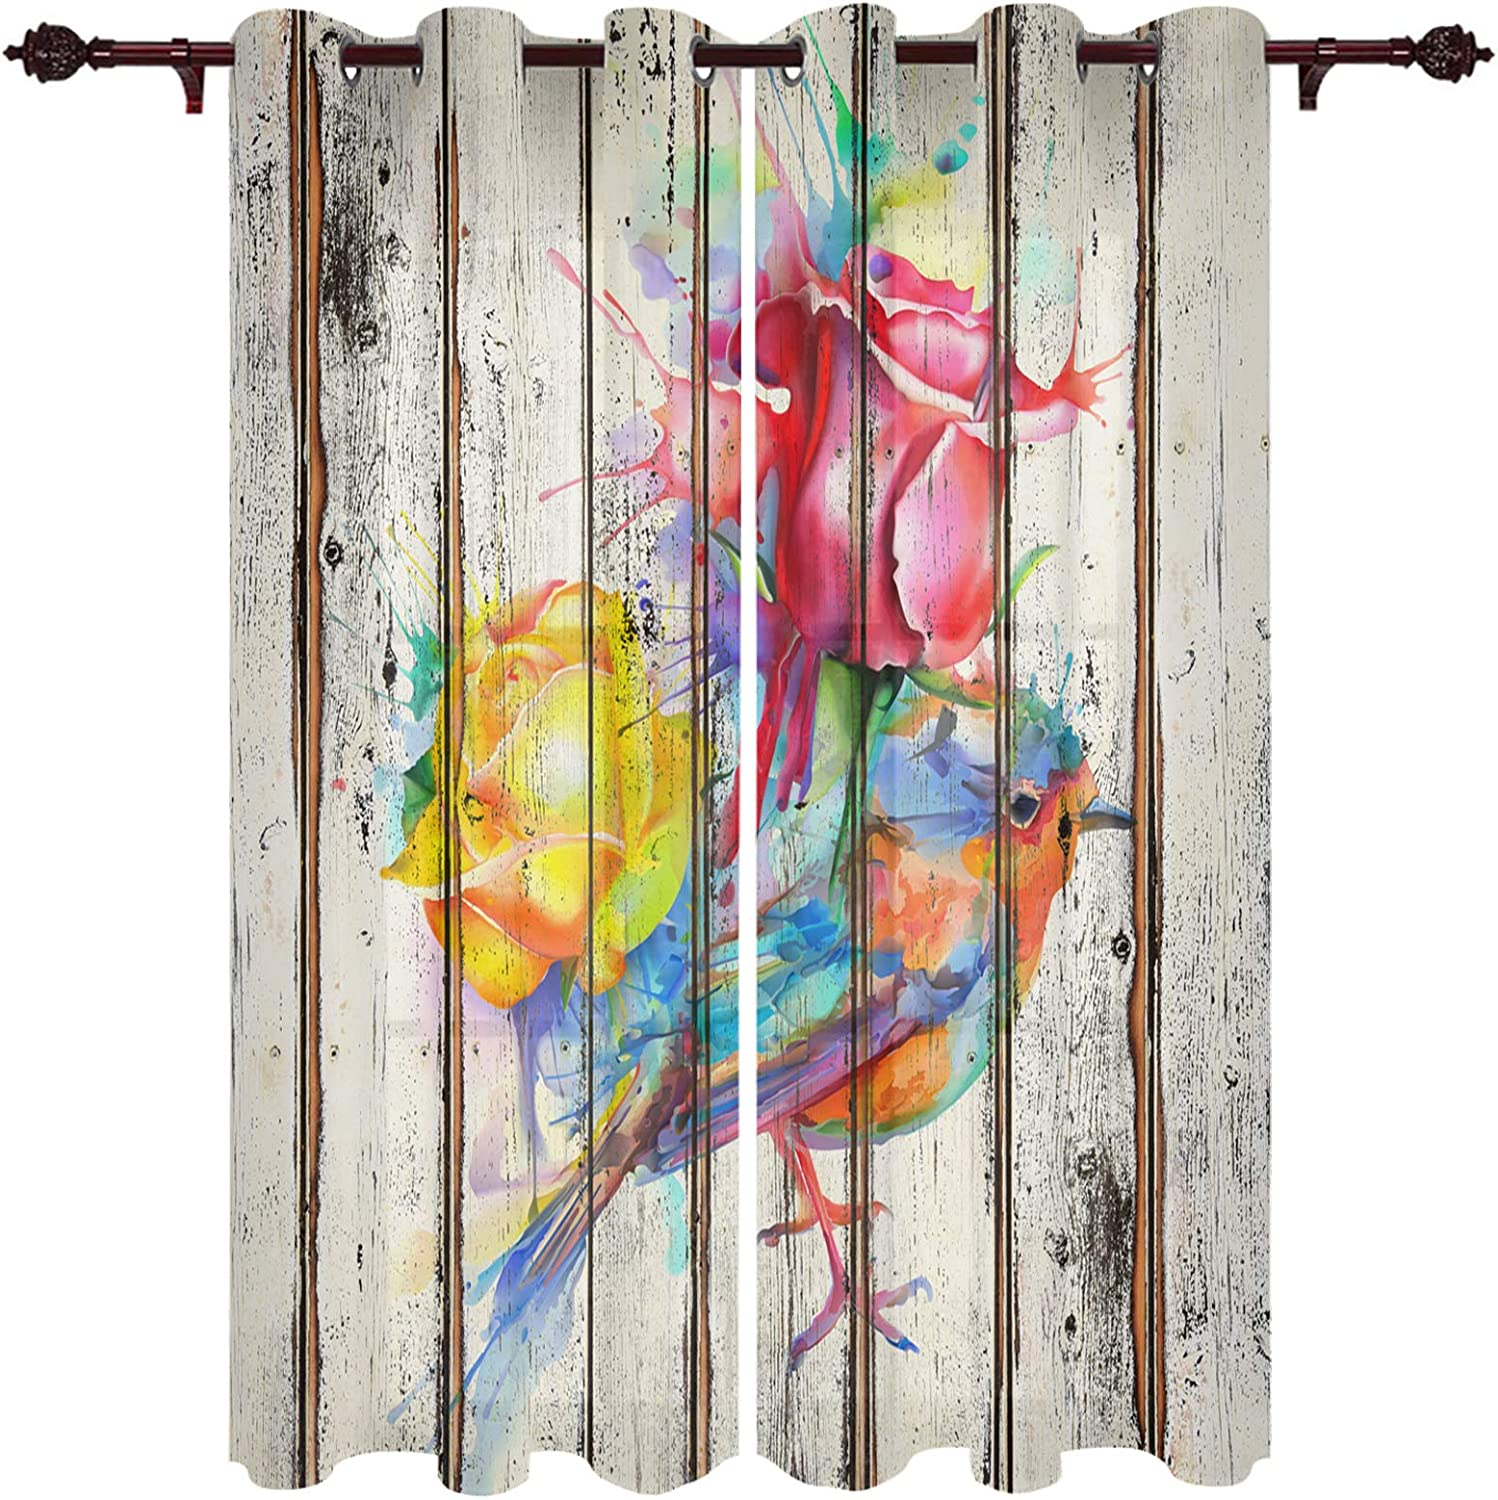 YEHO In a popularity Selling rankings Art Gallery Modern Bedroom L for Blackout Curtains